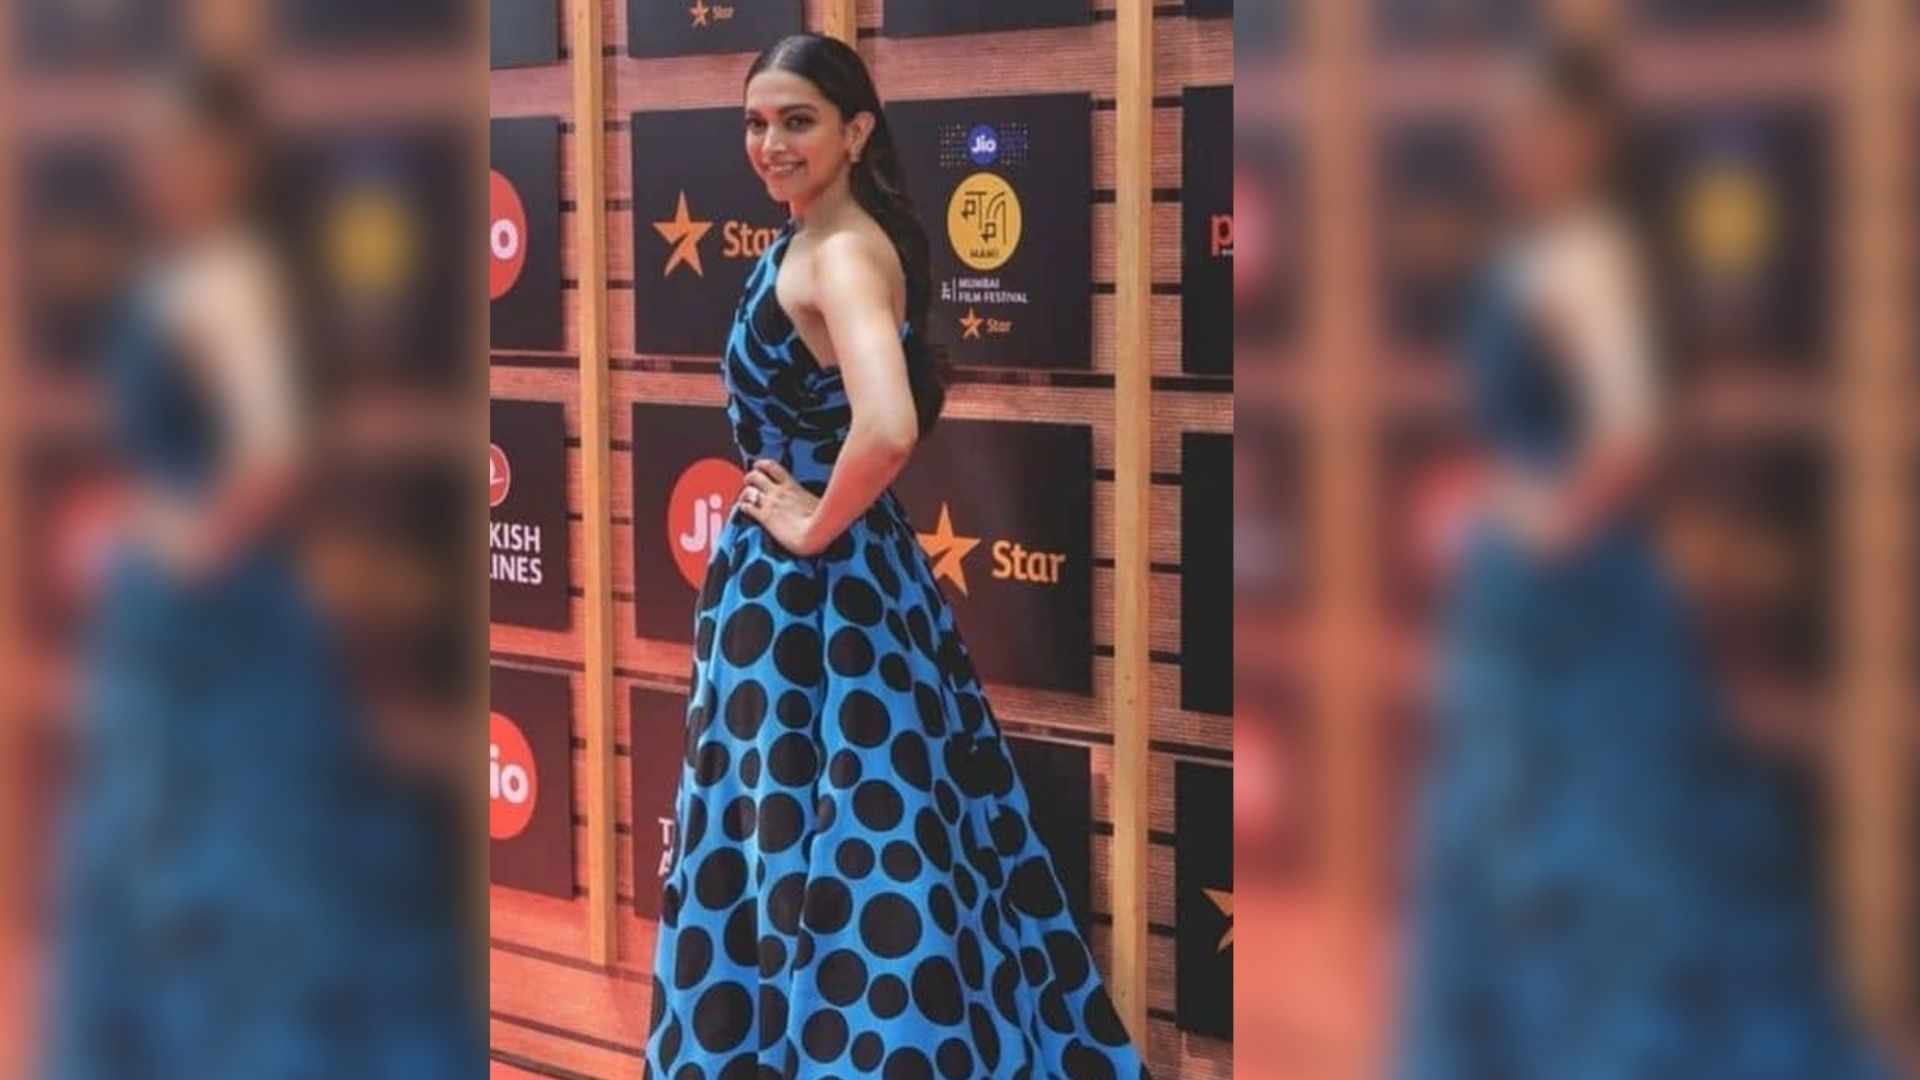 In Pics: Deepika Stuns in Polka Dots at MAMI Movie Mela